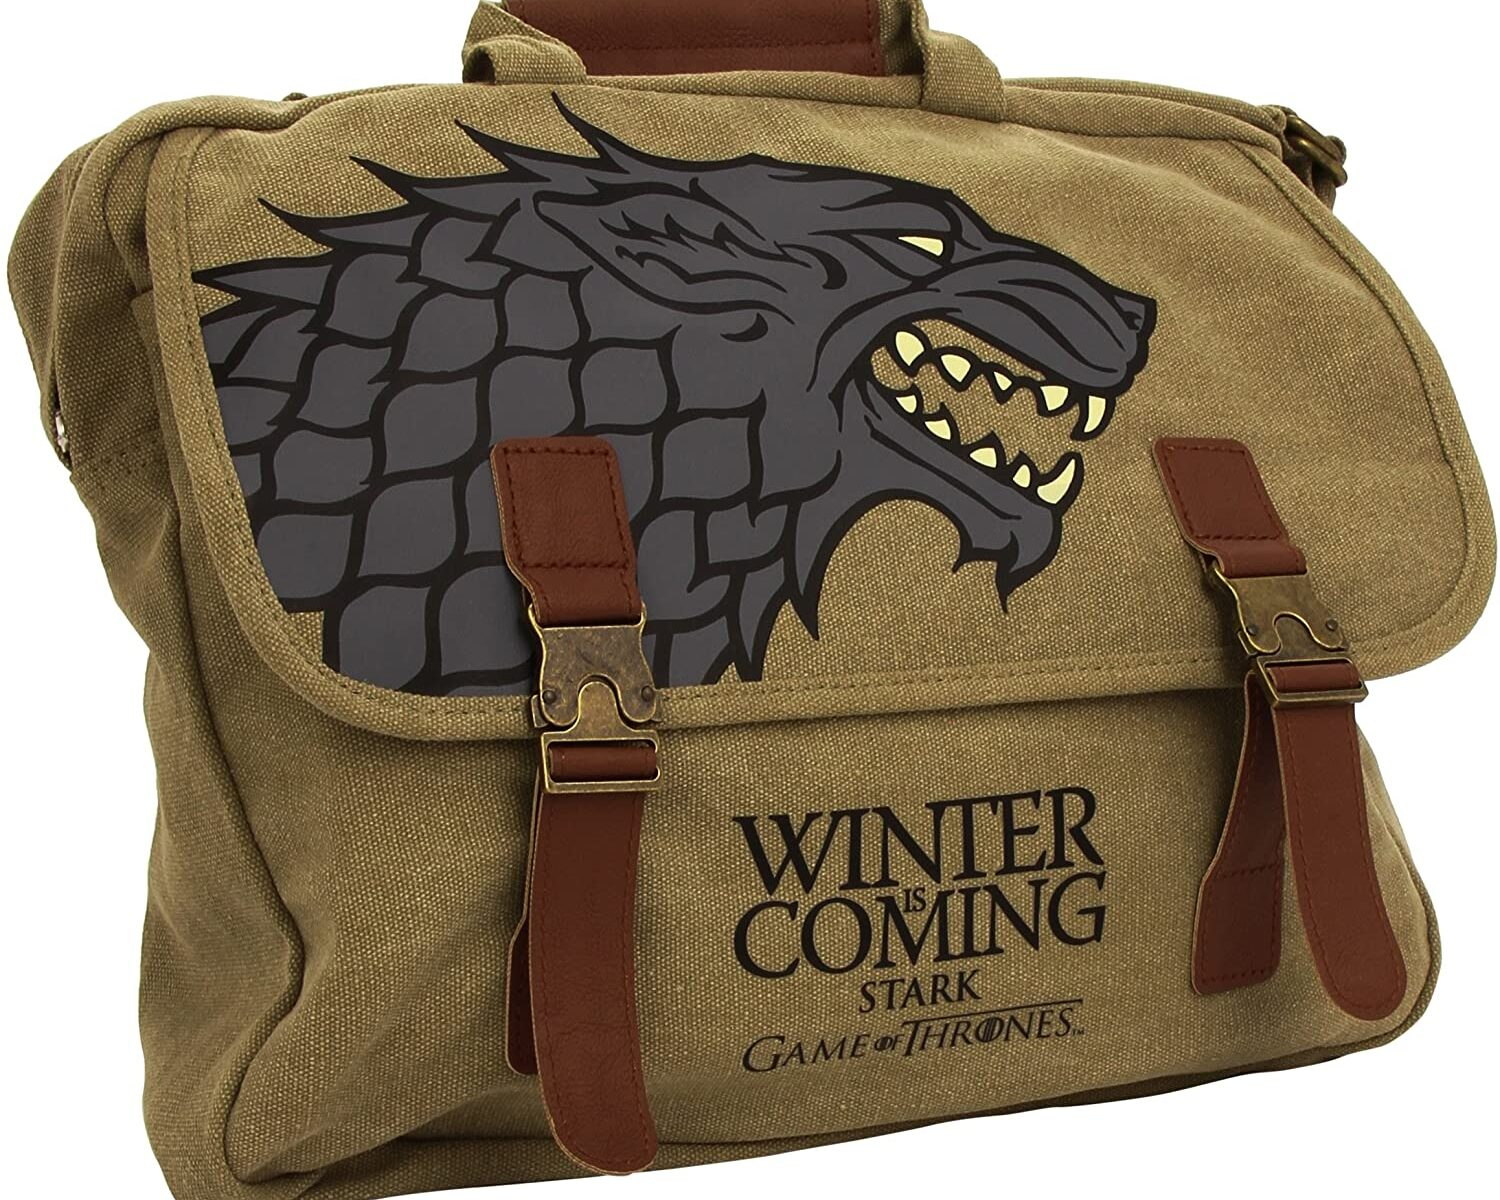 Game of Thrones toile sac à bandoulière Stark